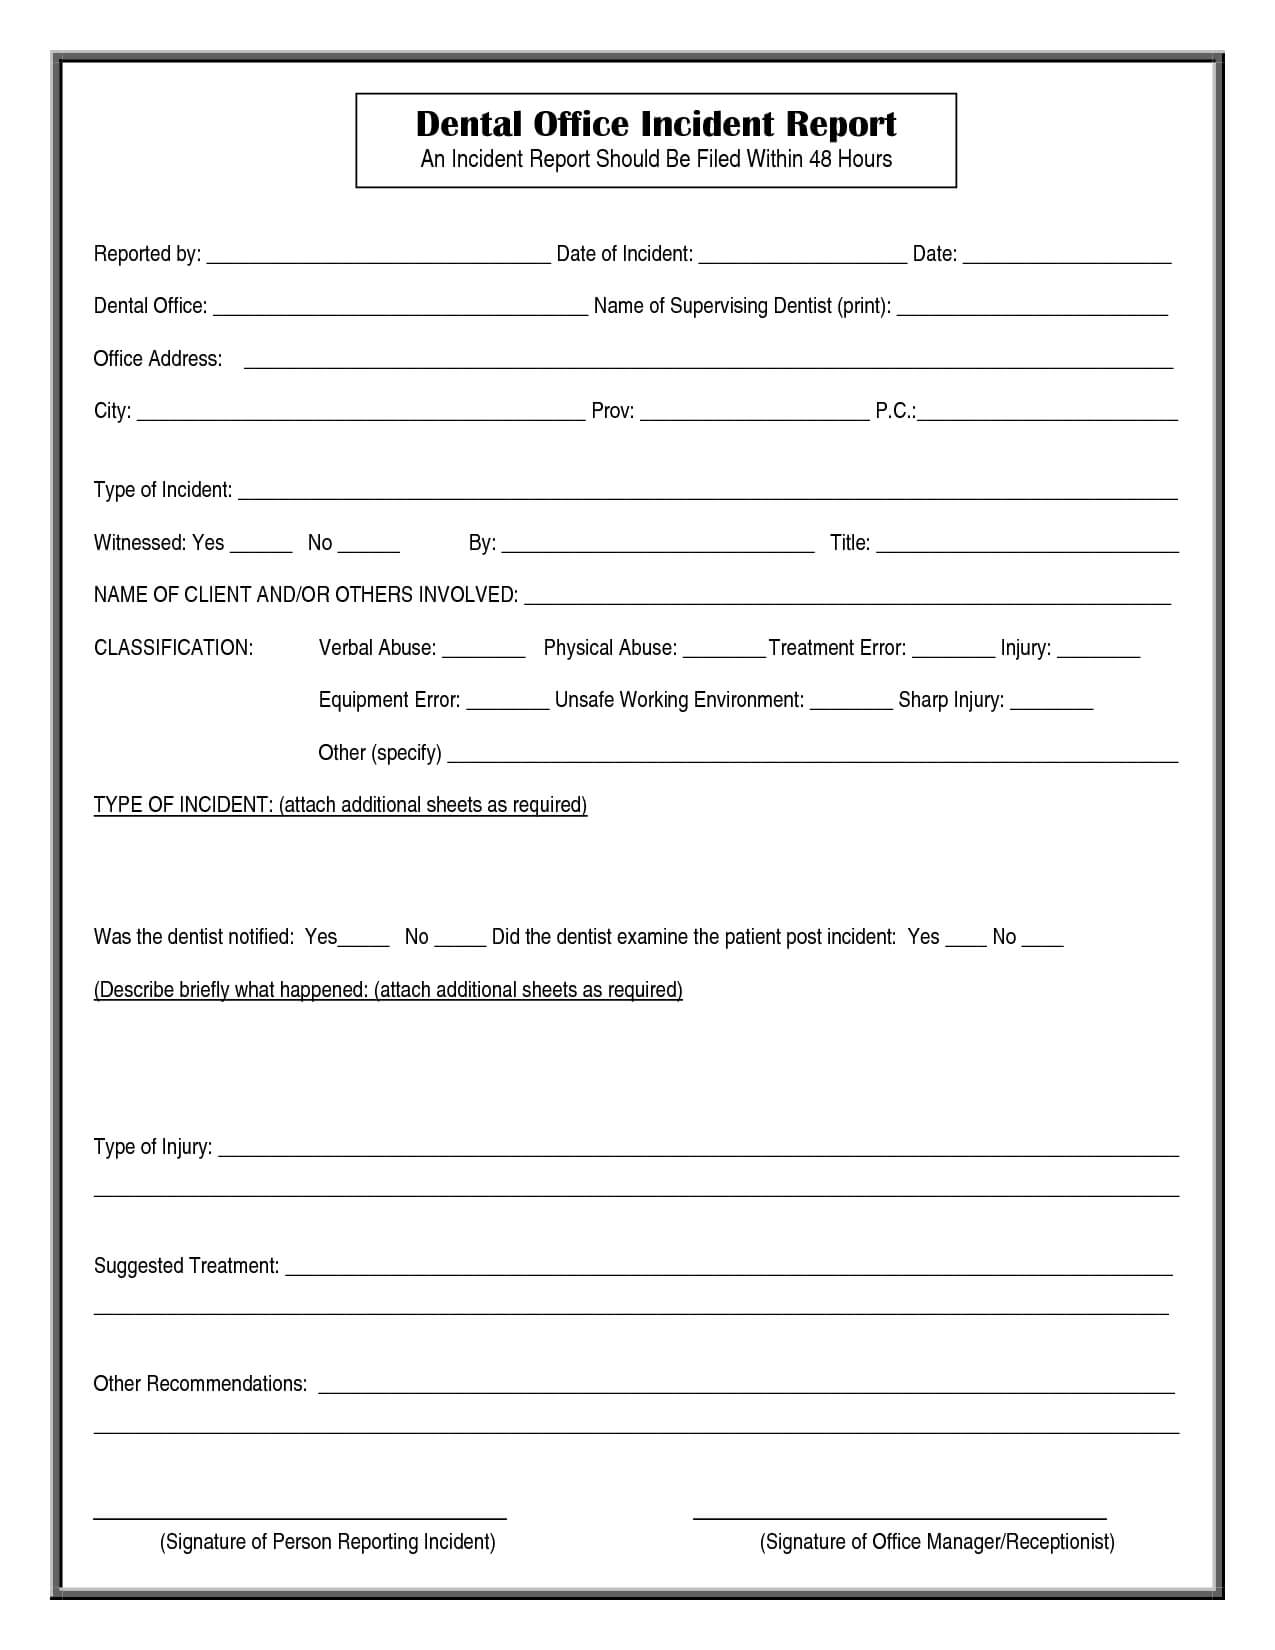 002 Office Incident Report Form Template 290953 Hospital regarding Incident Report Form Template Qld